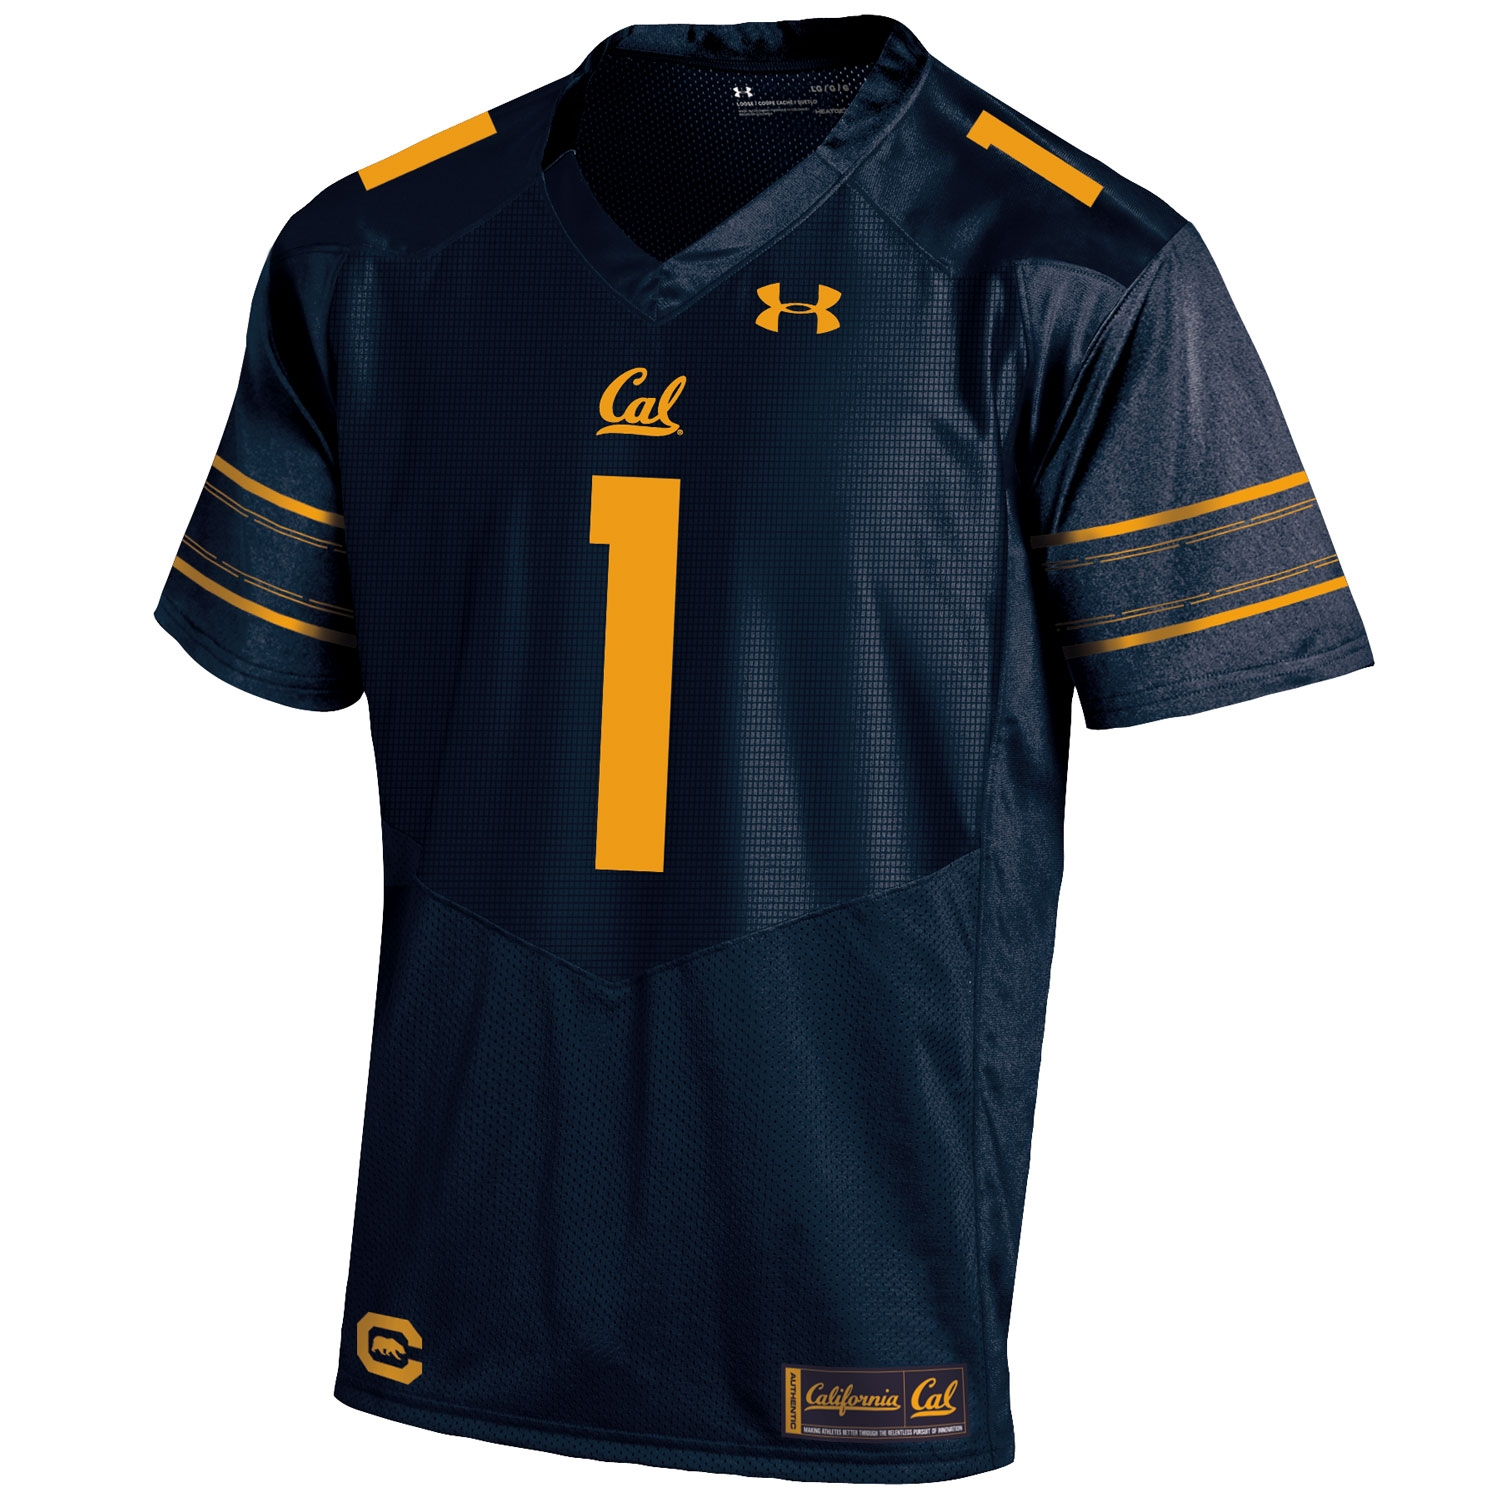 University of California Berkeley Under Armour Sideline Replica Football Jersey